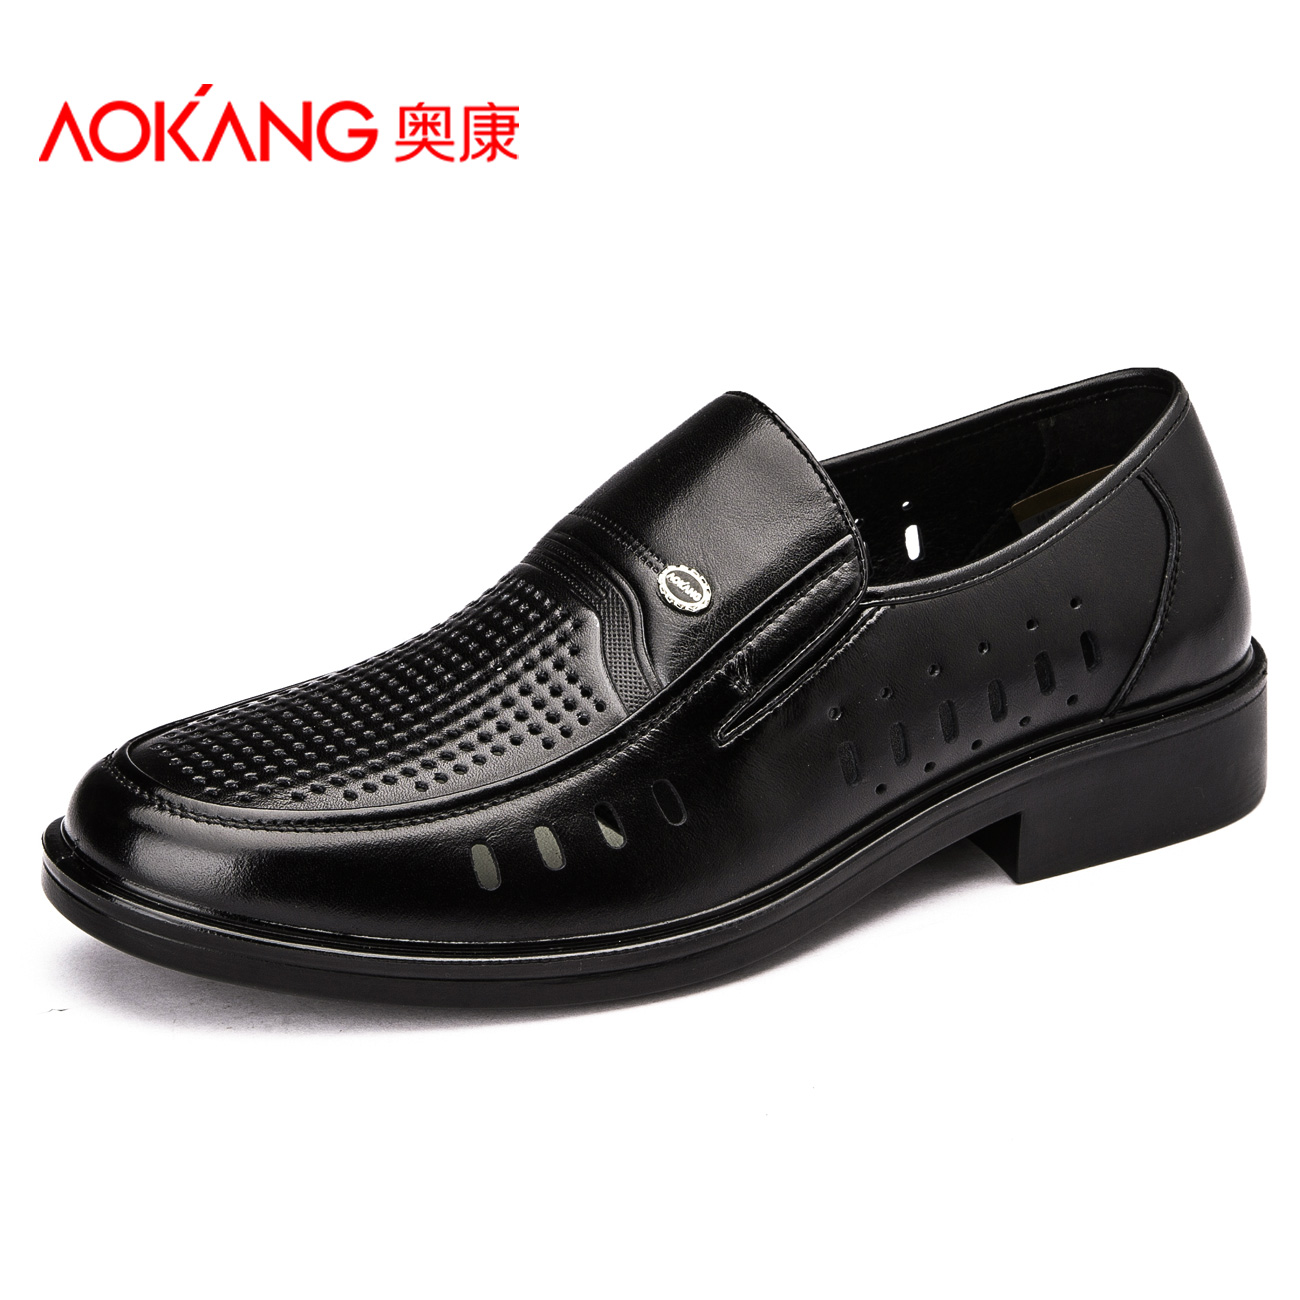 aokang 2015 new arrival summer genuine leather cool cutout